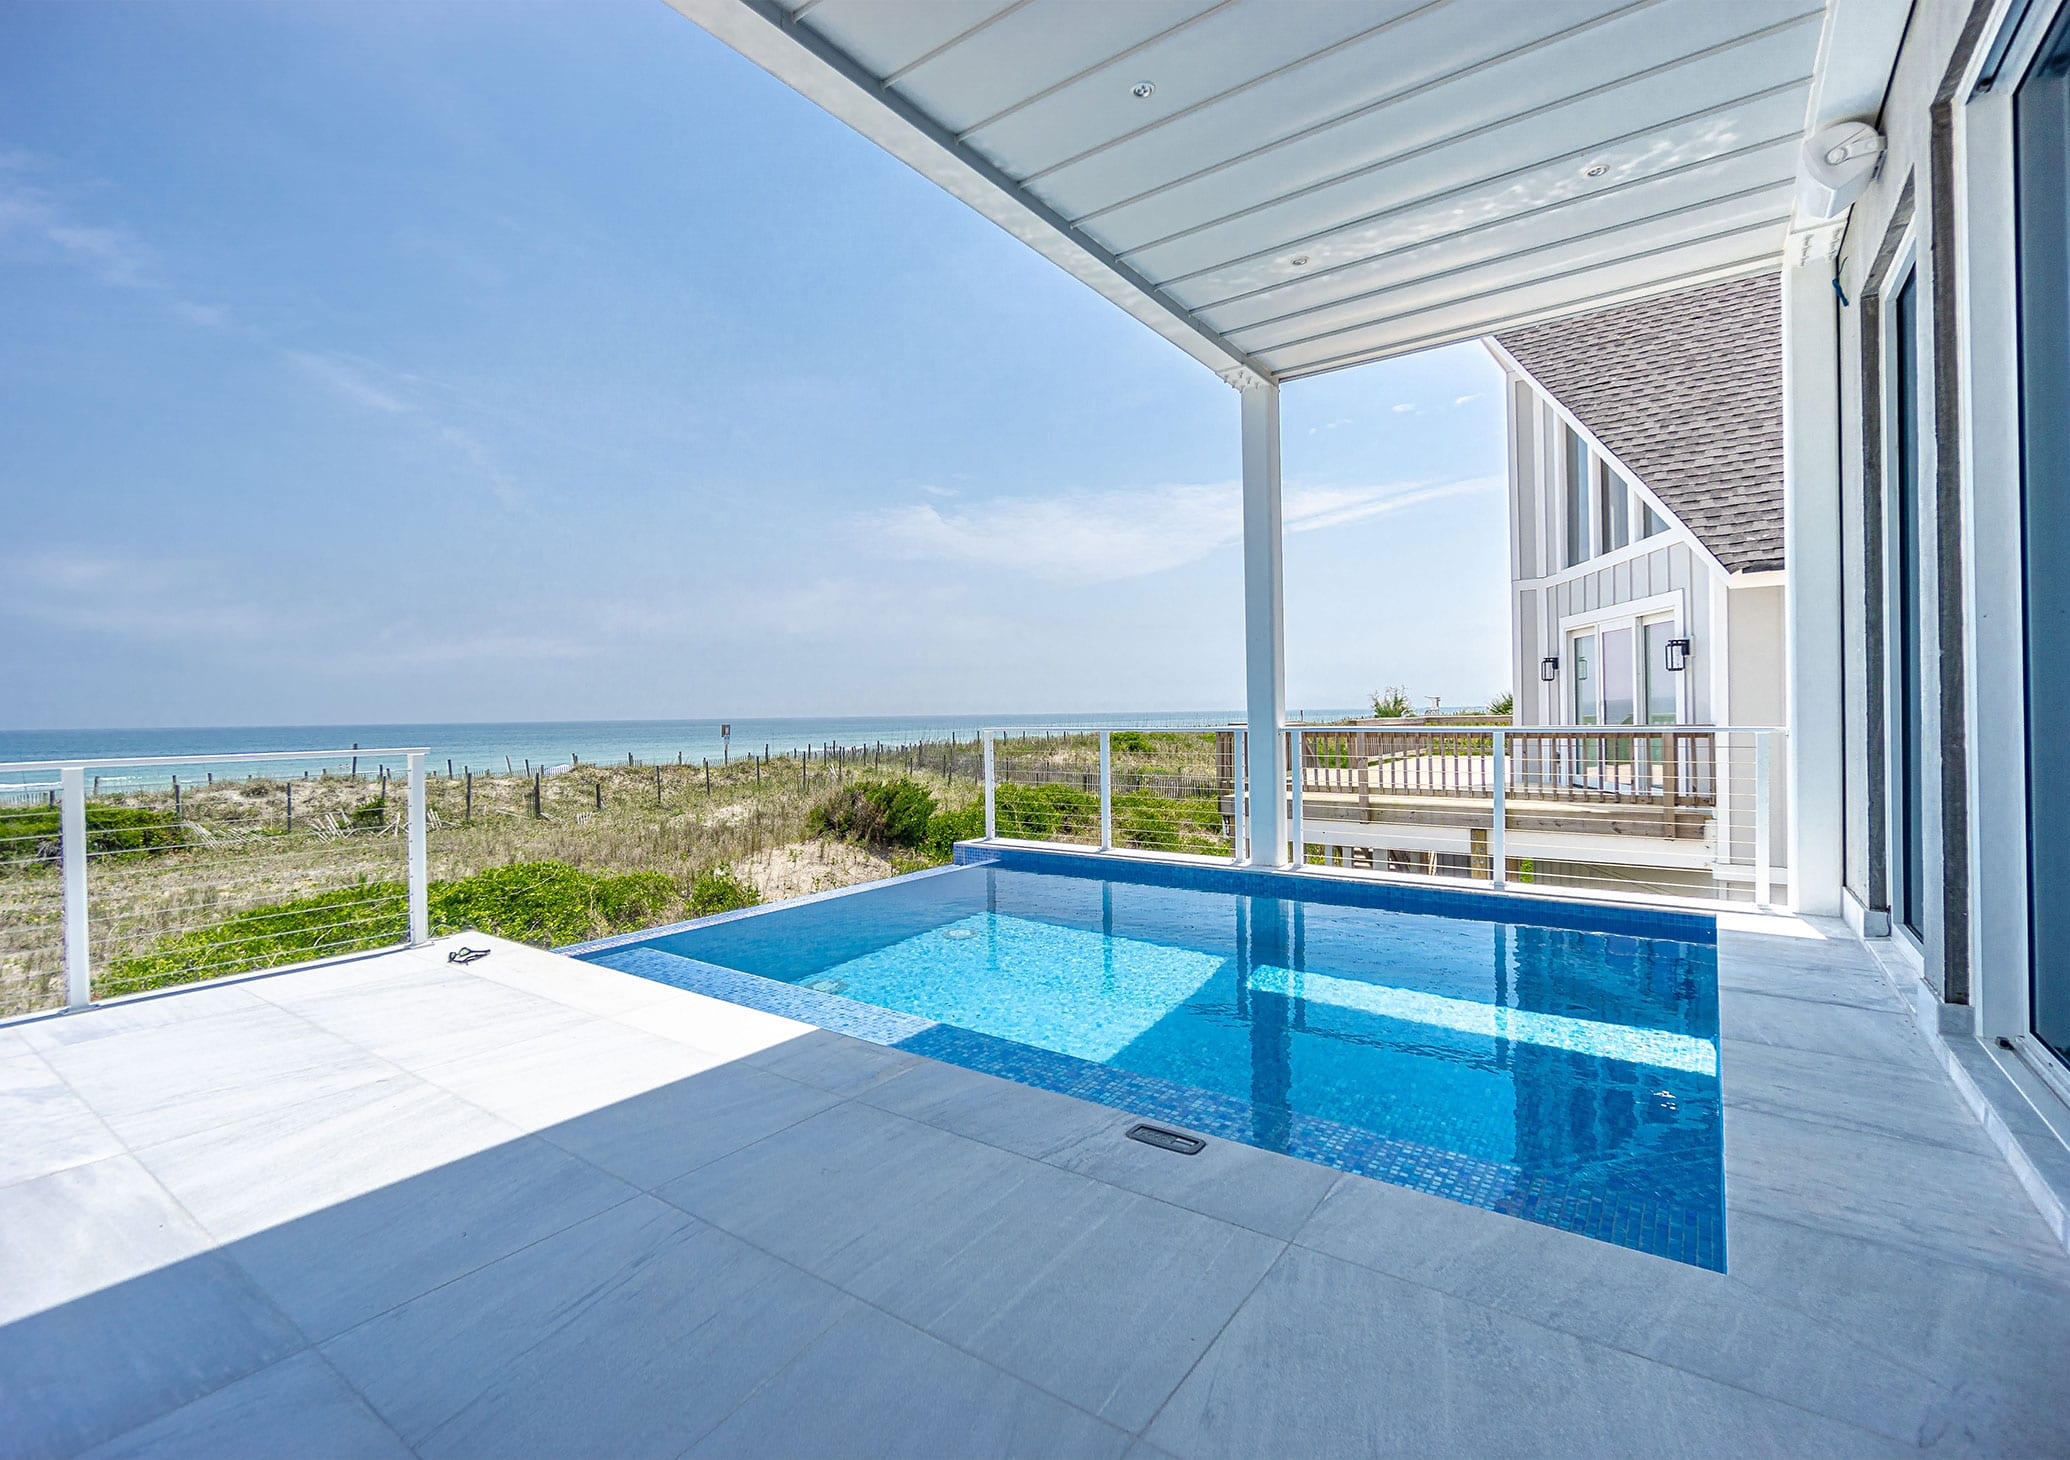 Stoneline-Group-Ice-White-Marble-Florida-Marble-Collection-Marble-Tumbled-Tile-Living-Room-Interior-Balcony-Pool-Marble-Design-Pictures